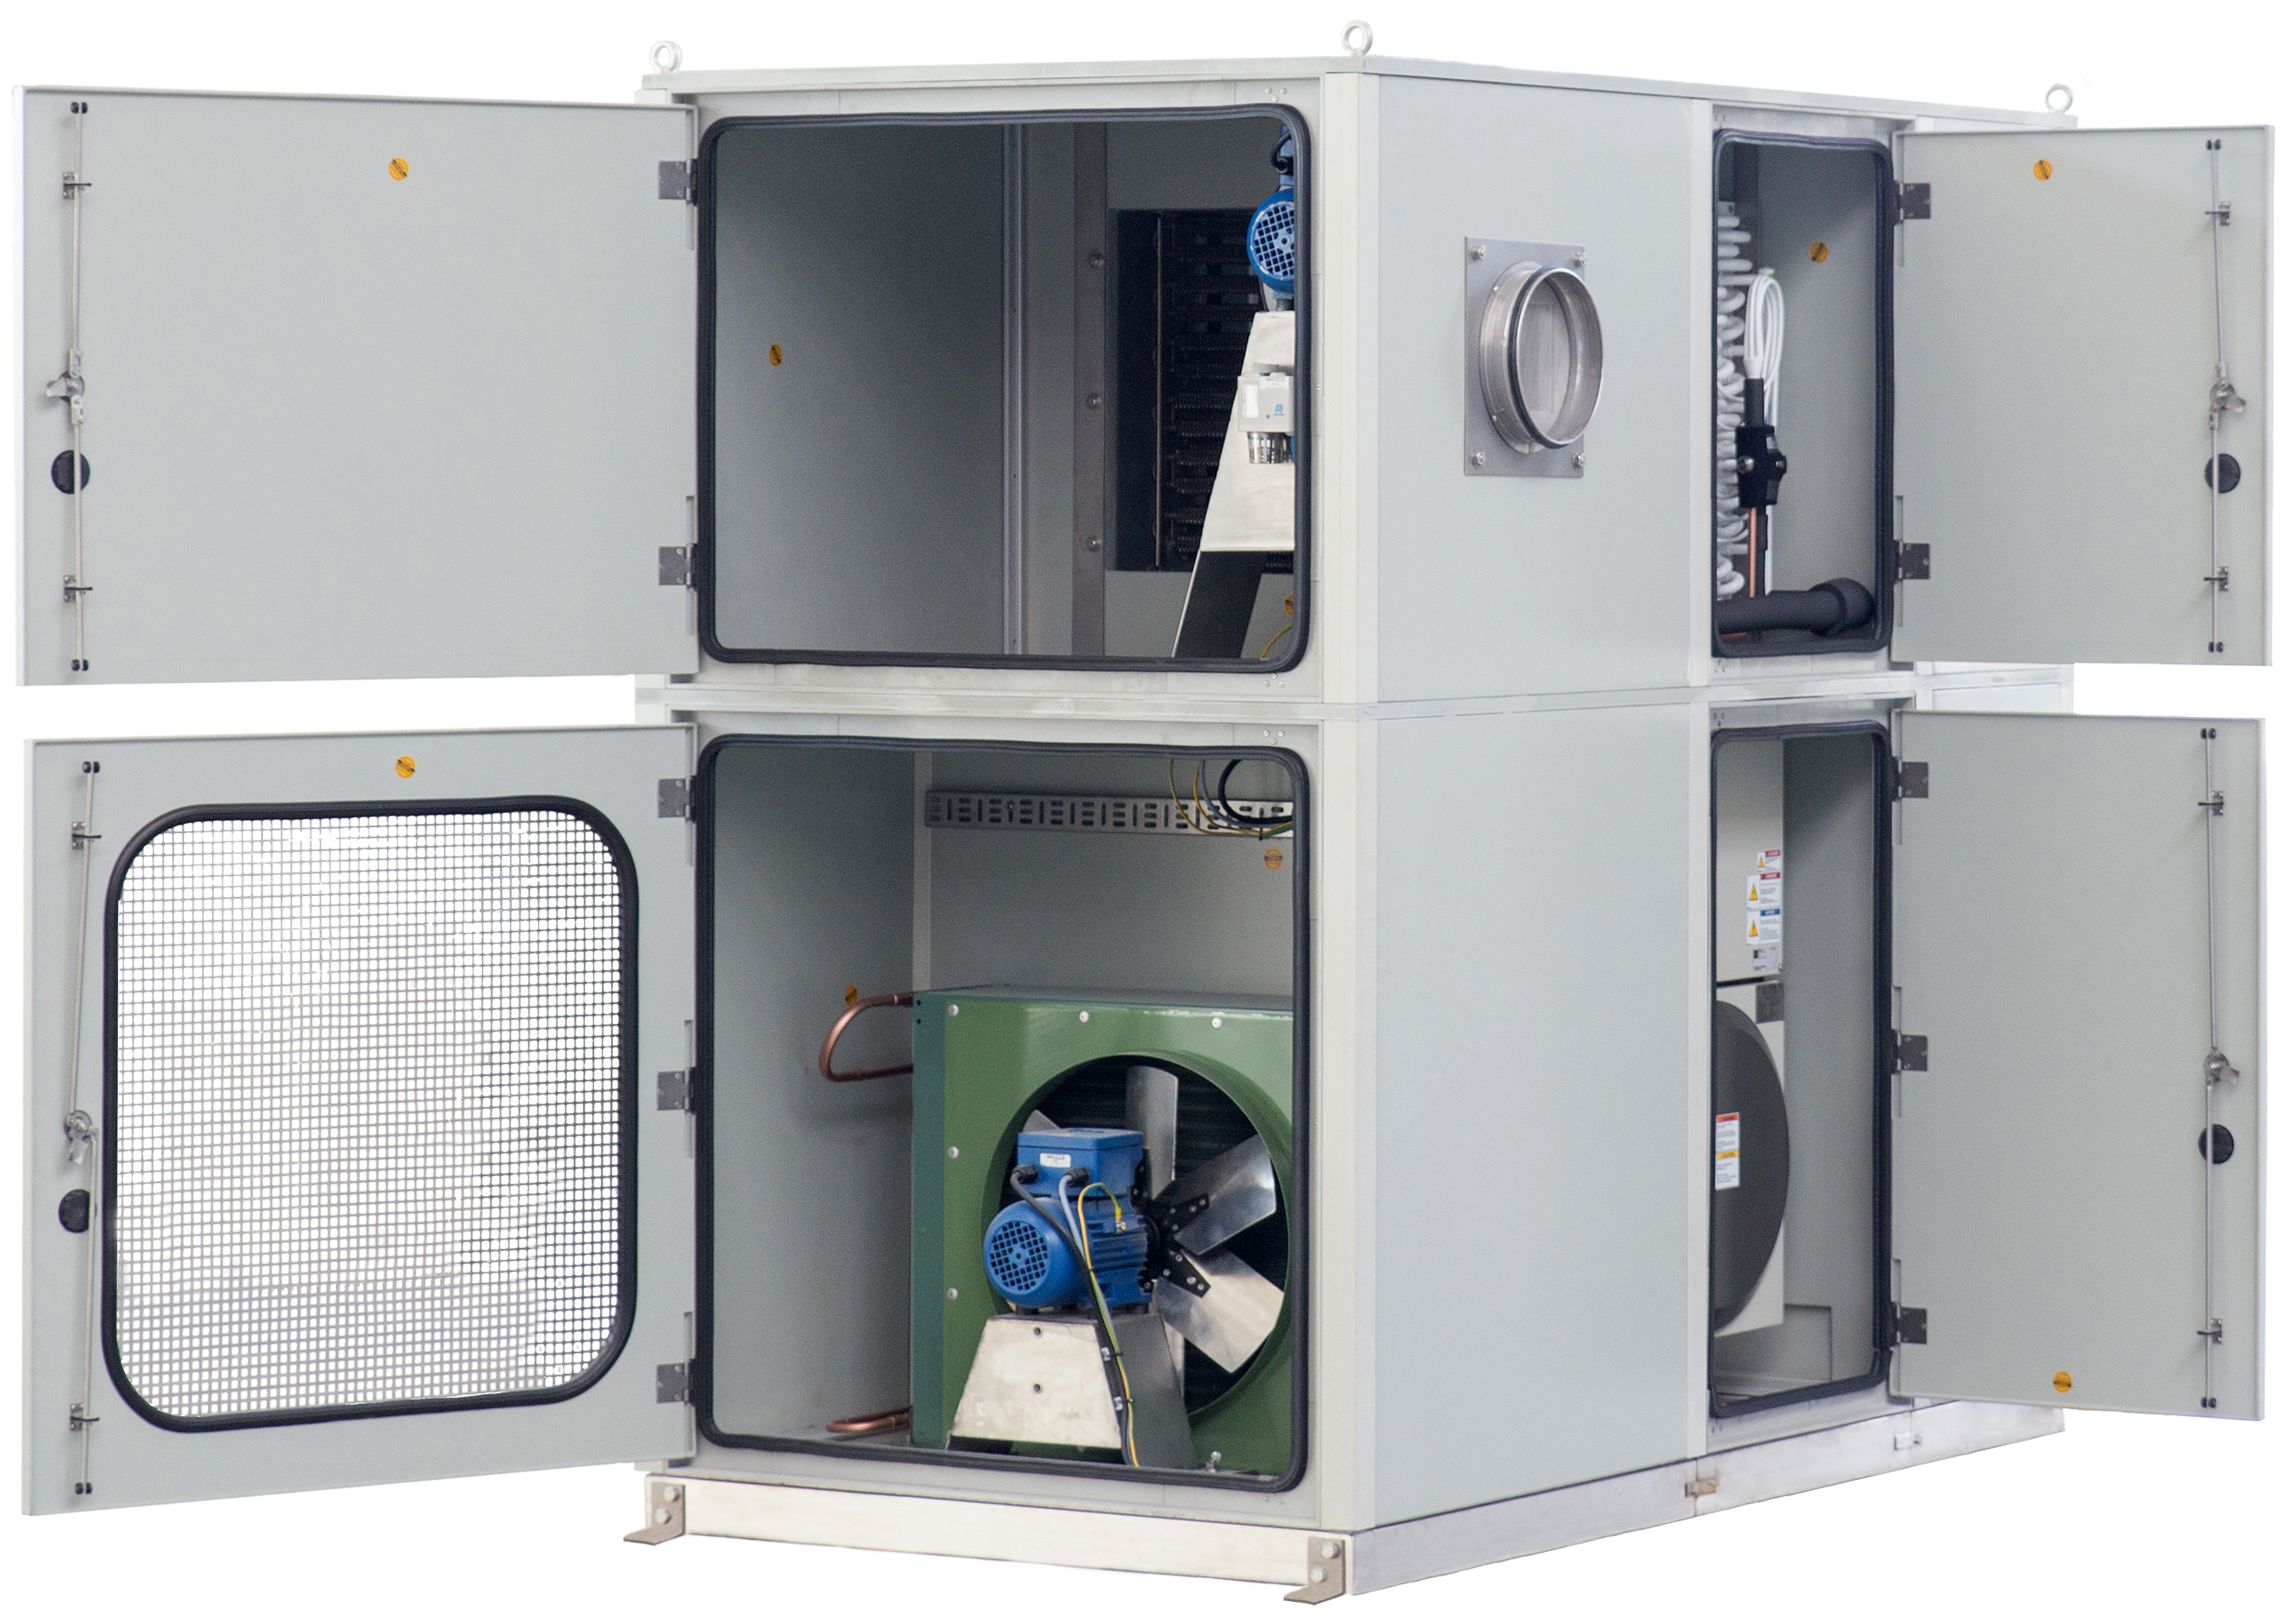 Innovative Explosion Proof Hvac System Provides